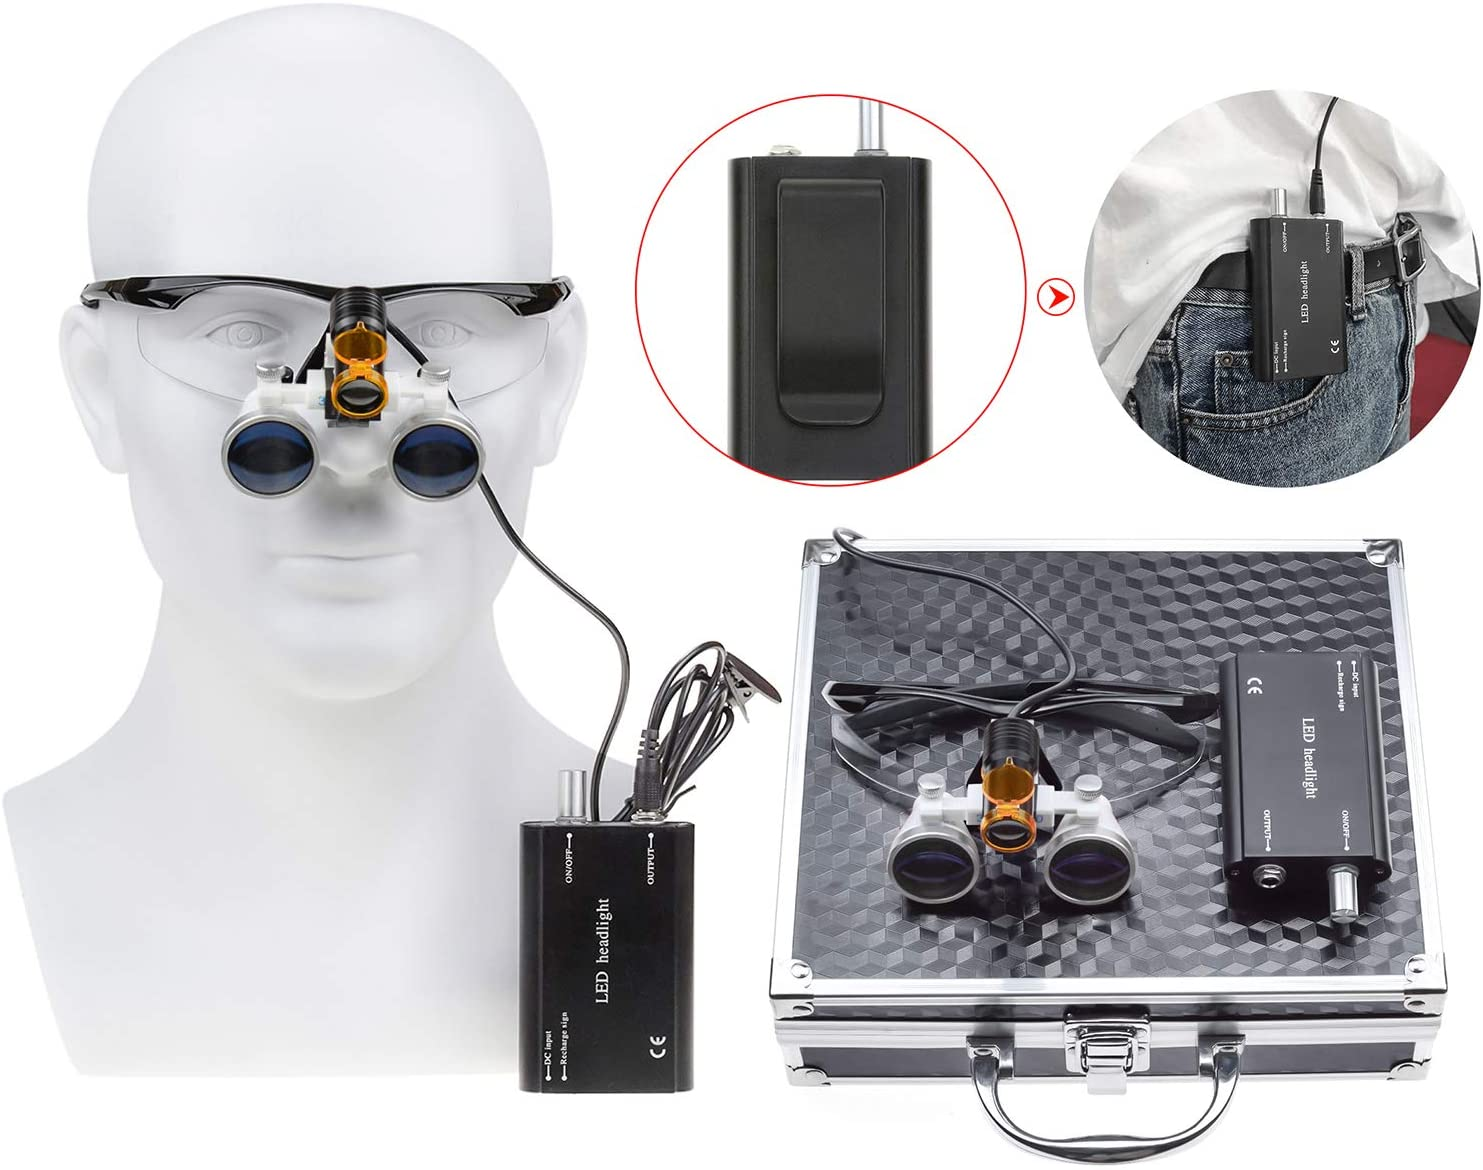 Zgood 2.5X420mm Working Distance Optical Glass Surgical Binocular Loupes + 5W LED Waist-hang Head Lamp with Filter + Aluminum Box DY-008 (Black)